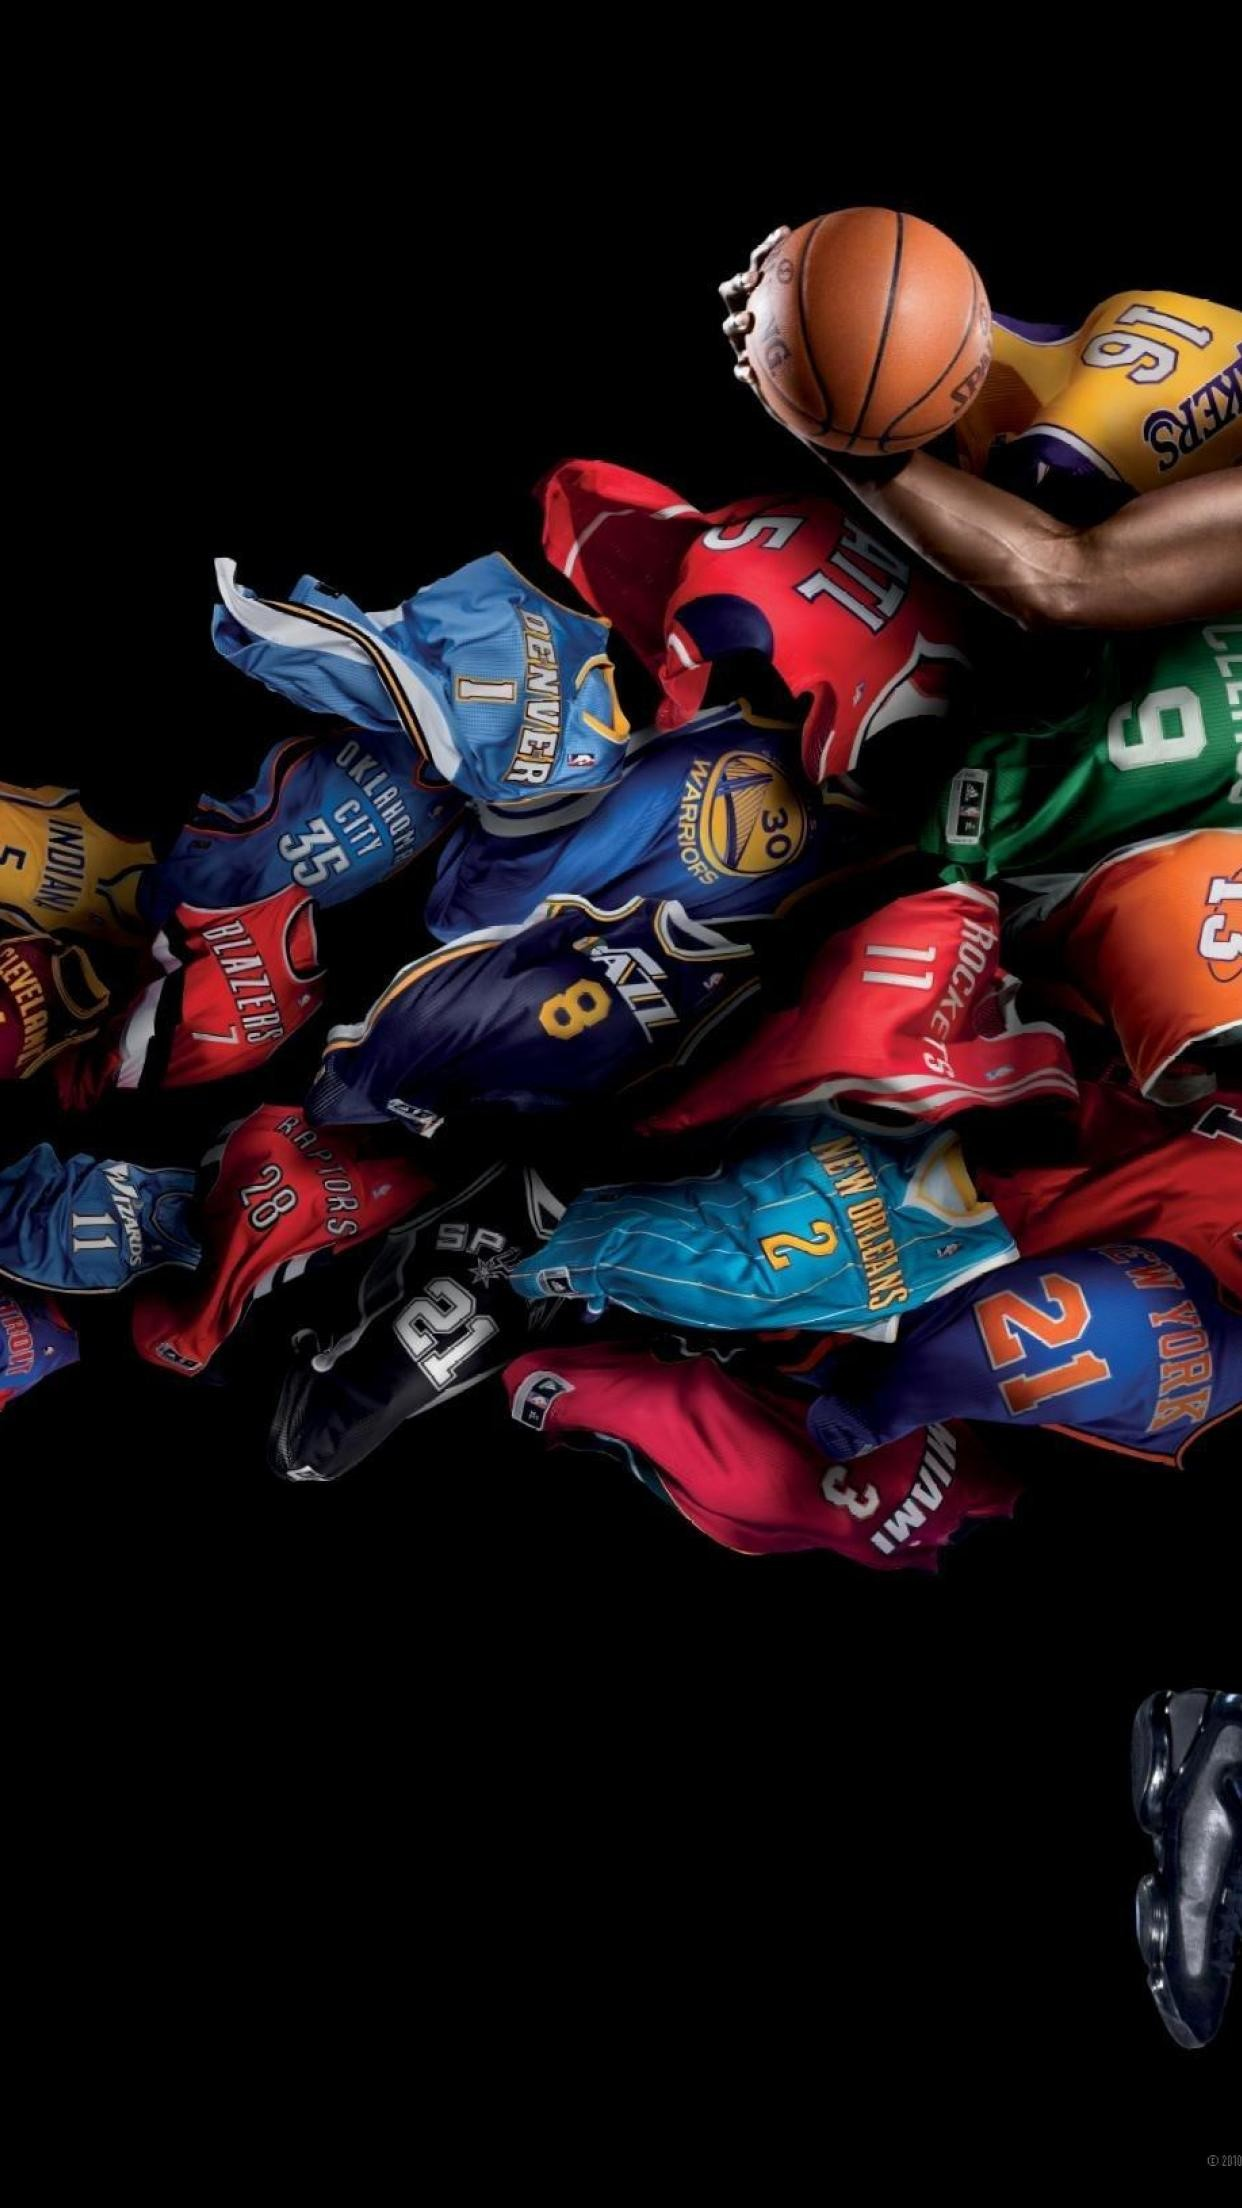 Free Download Cool Basketball Wallpapers For Iphone 60 Images 1242x2208 For Your Desktop Mobile Tablet Explore 68 Nike Basketball Wallpapers 2015 Cool Nike Wallpapers Basketball Court Wallpaper Nike Money Wallpaper